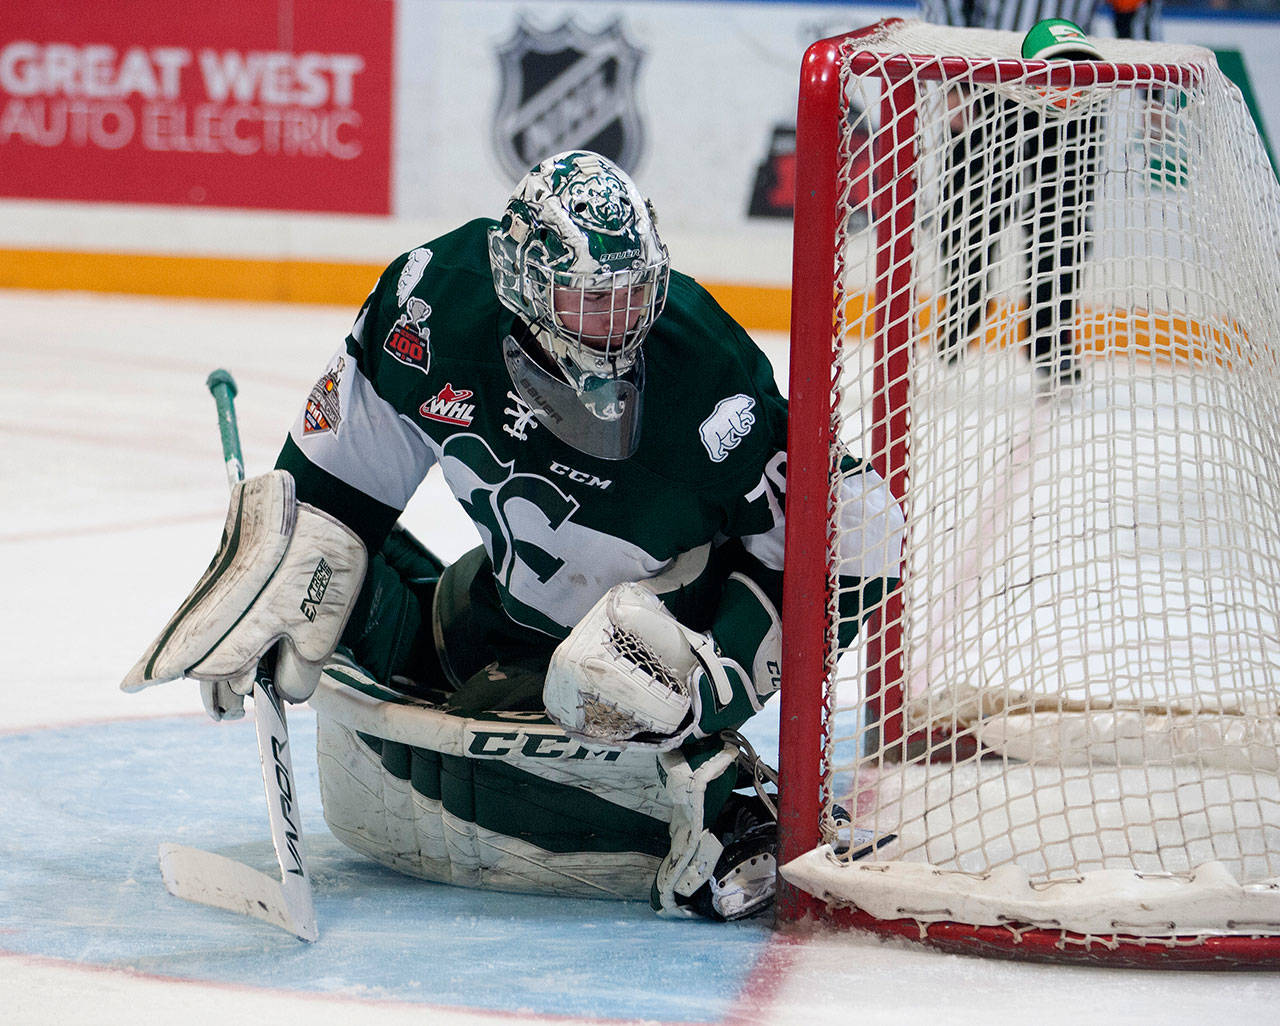 Silvertips goalie Carter Hart made 22 saves in Sunday night's 3-0 loss to the Swift Current Broncos. (Robert Murray / WHL)